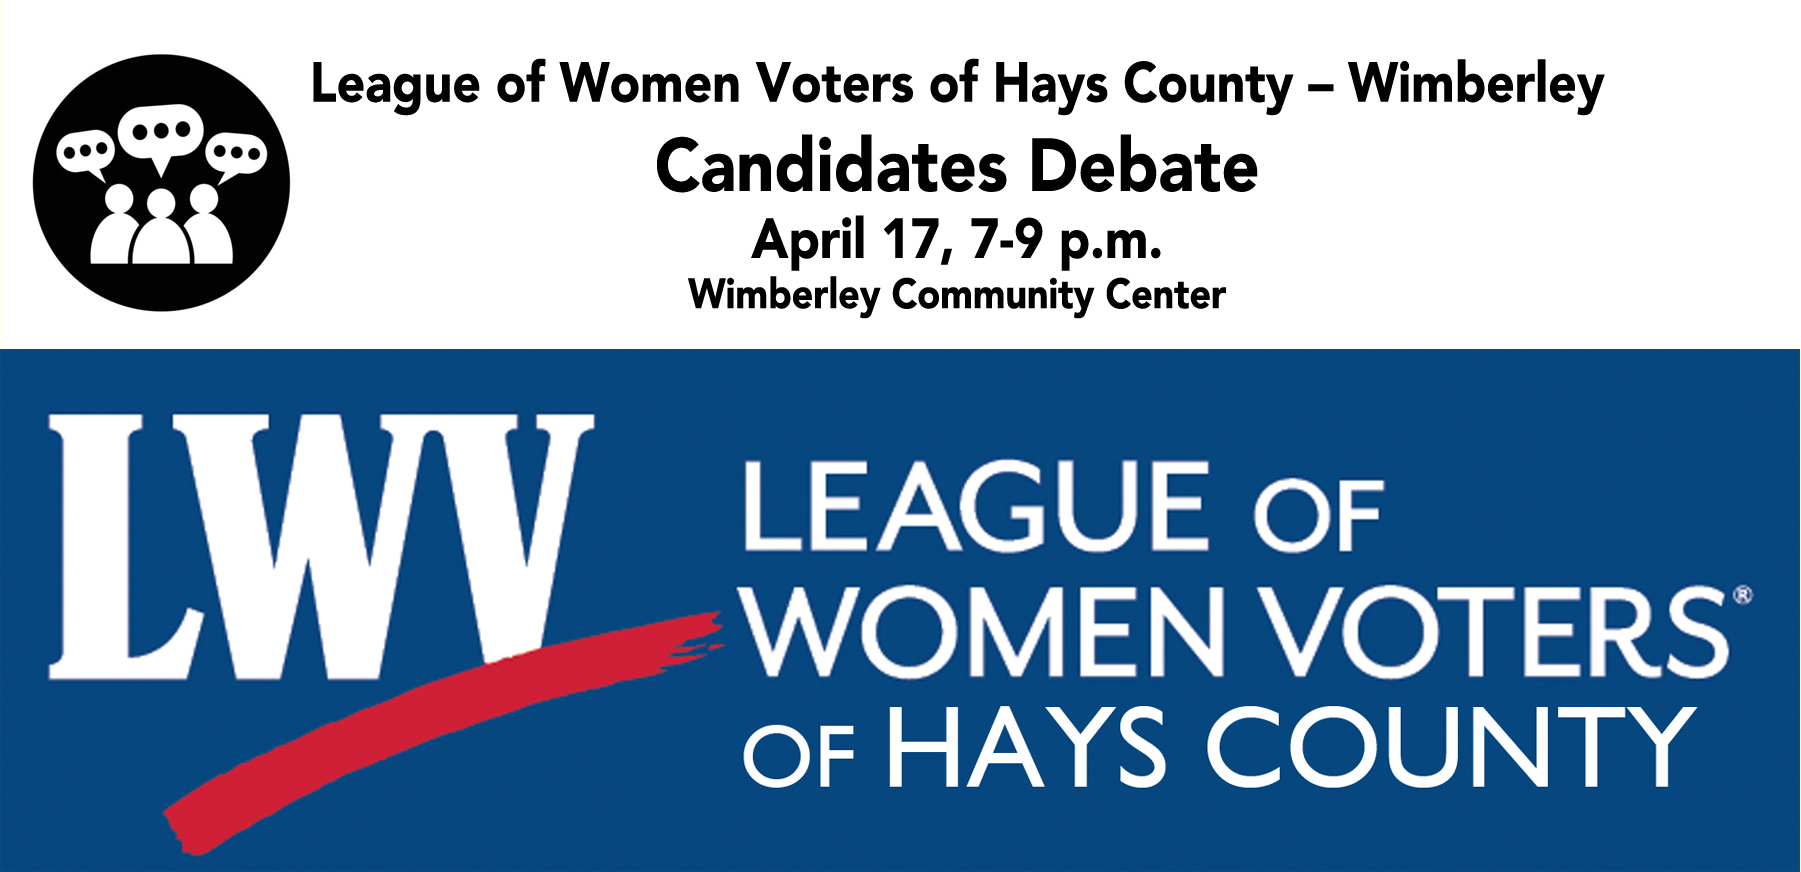 poster League of Women Voters of Hays County – Wimberley Candidates Debate